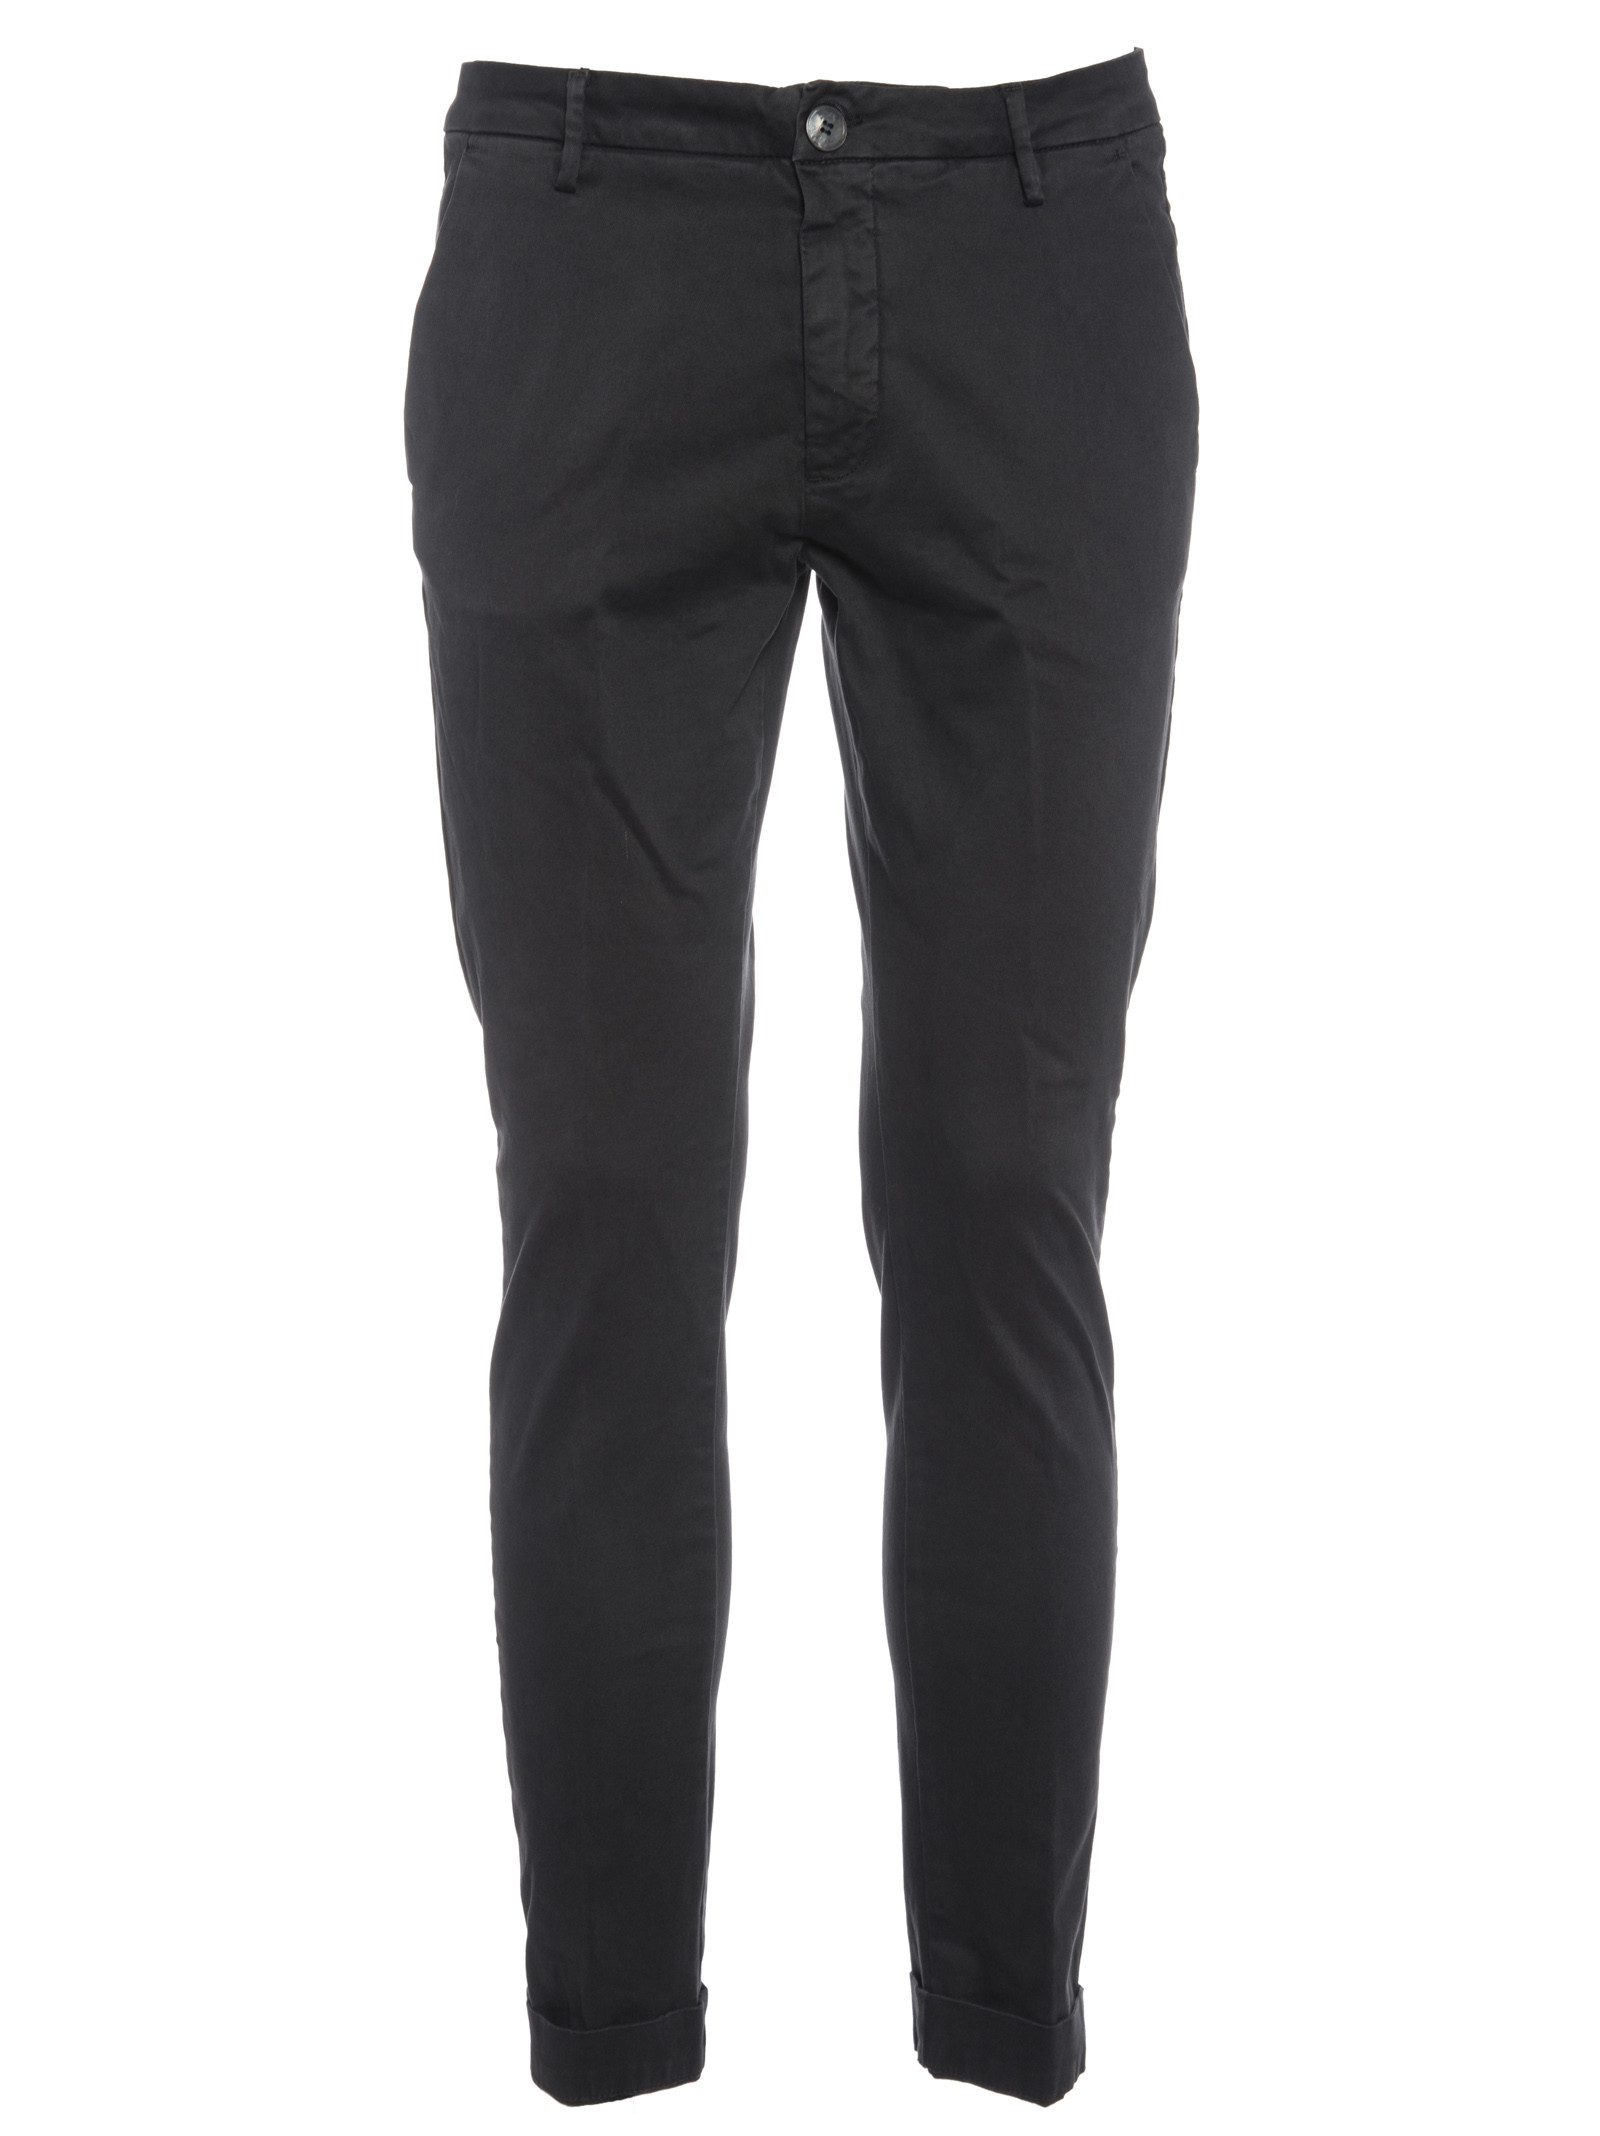 Aglini Edgard Panther Chino Trousers